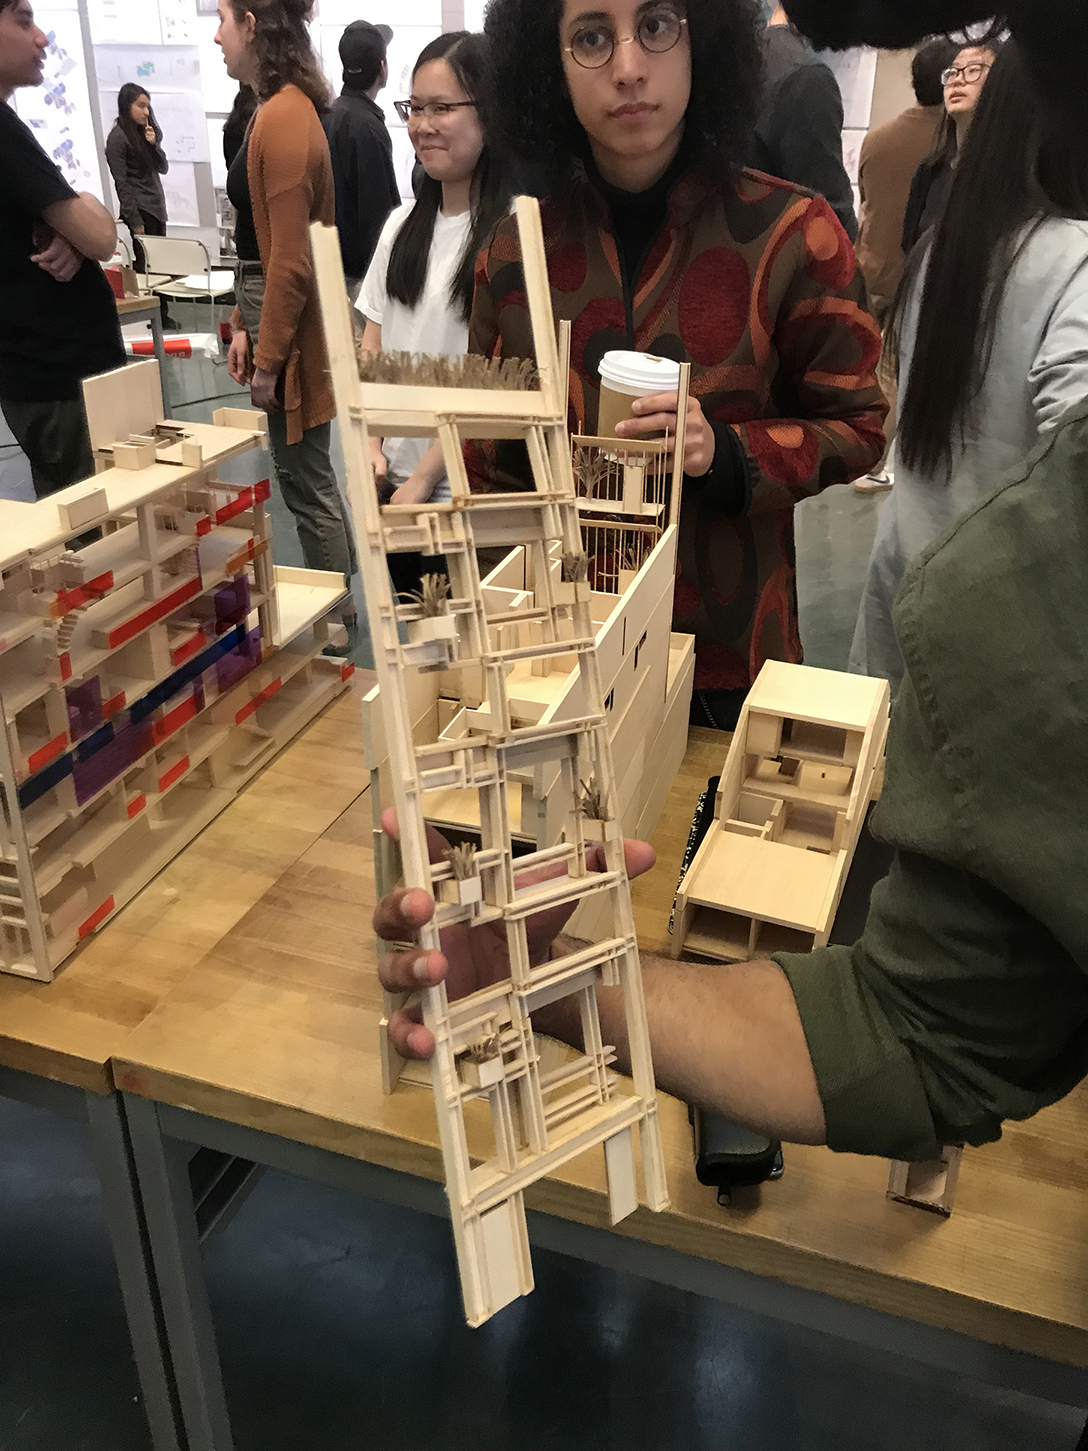 One team's model, used by them to analyze the building. In this example, the student team constructed the model so that the front façade could be removed. Photo: Kelvin Dickinson for the Paul Rudolph Heritage Foundation